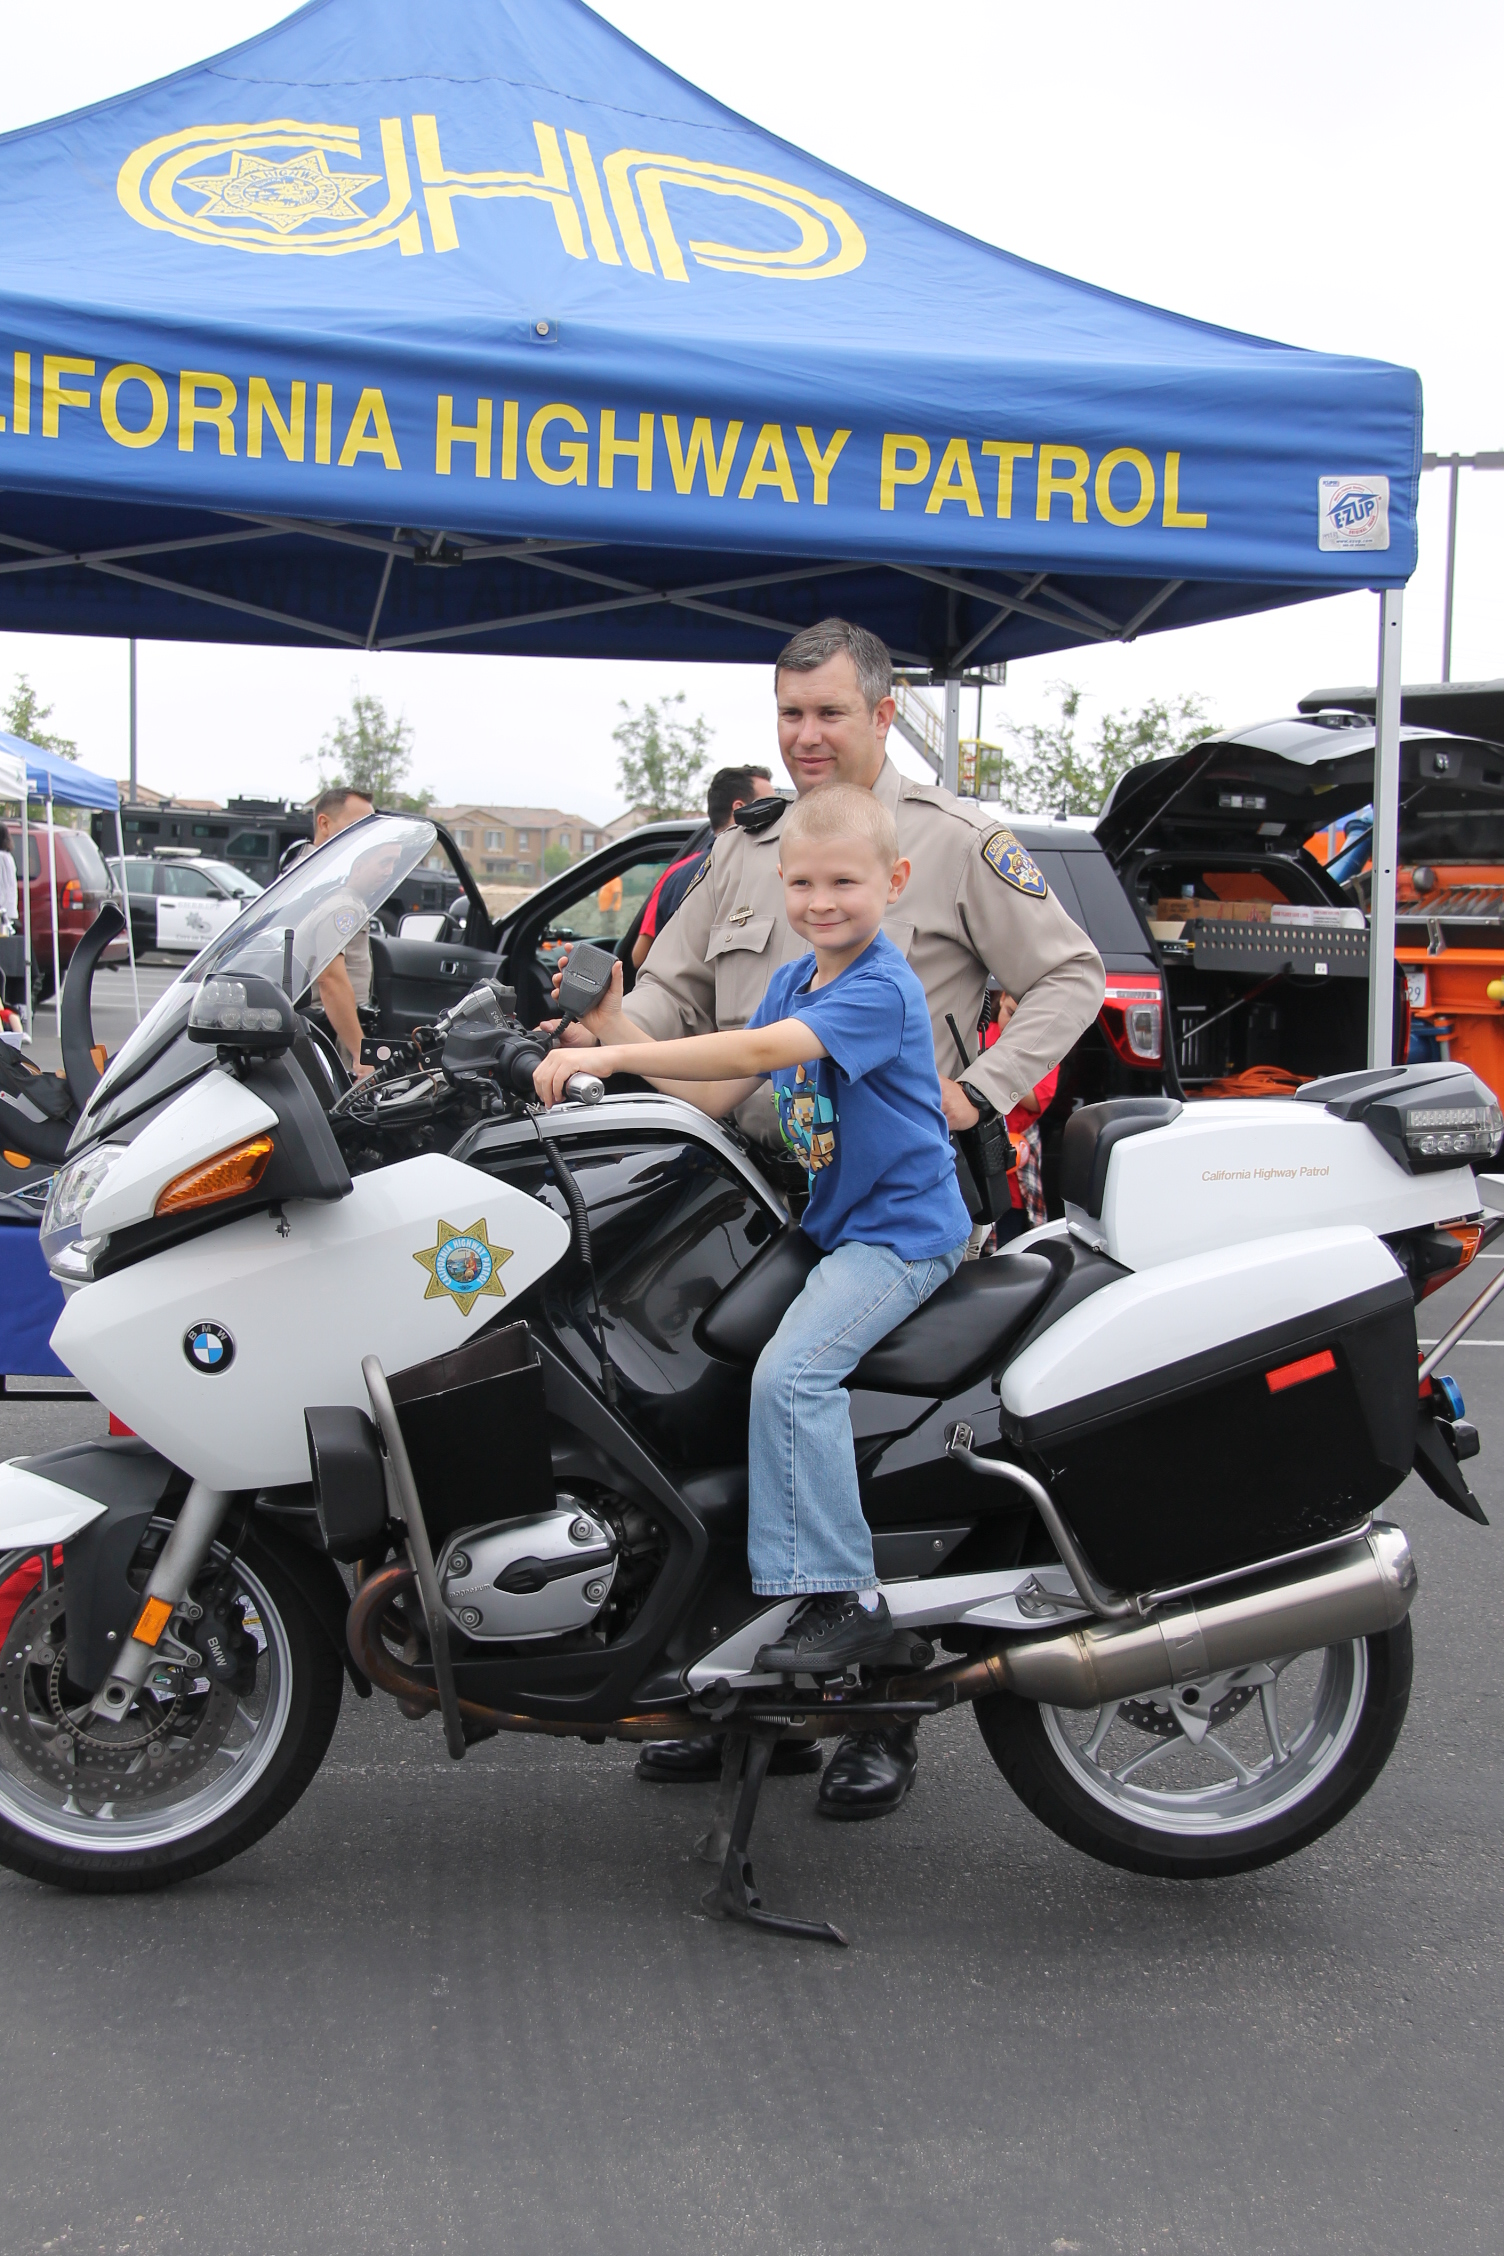 CHP motorcycle